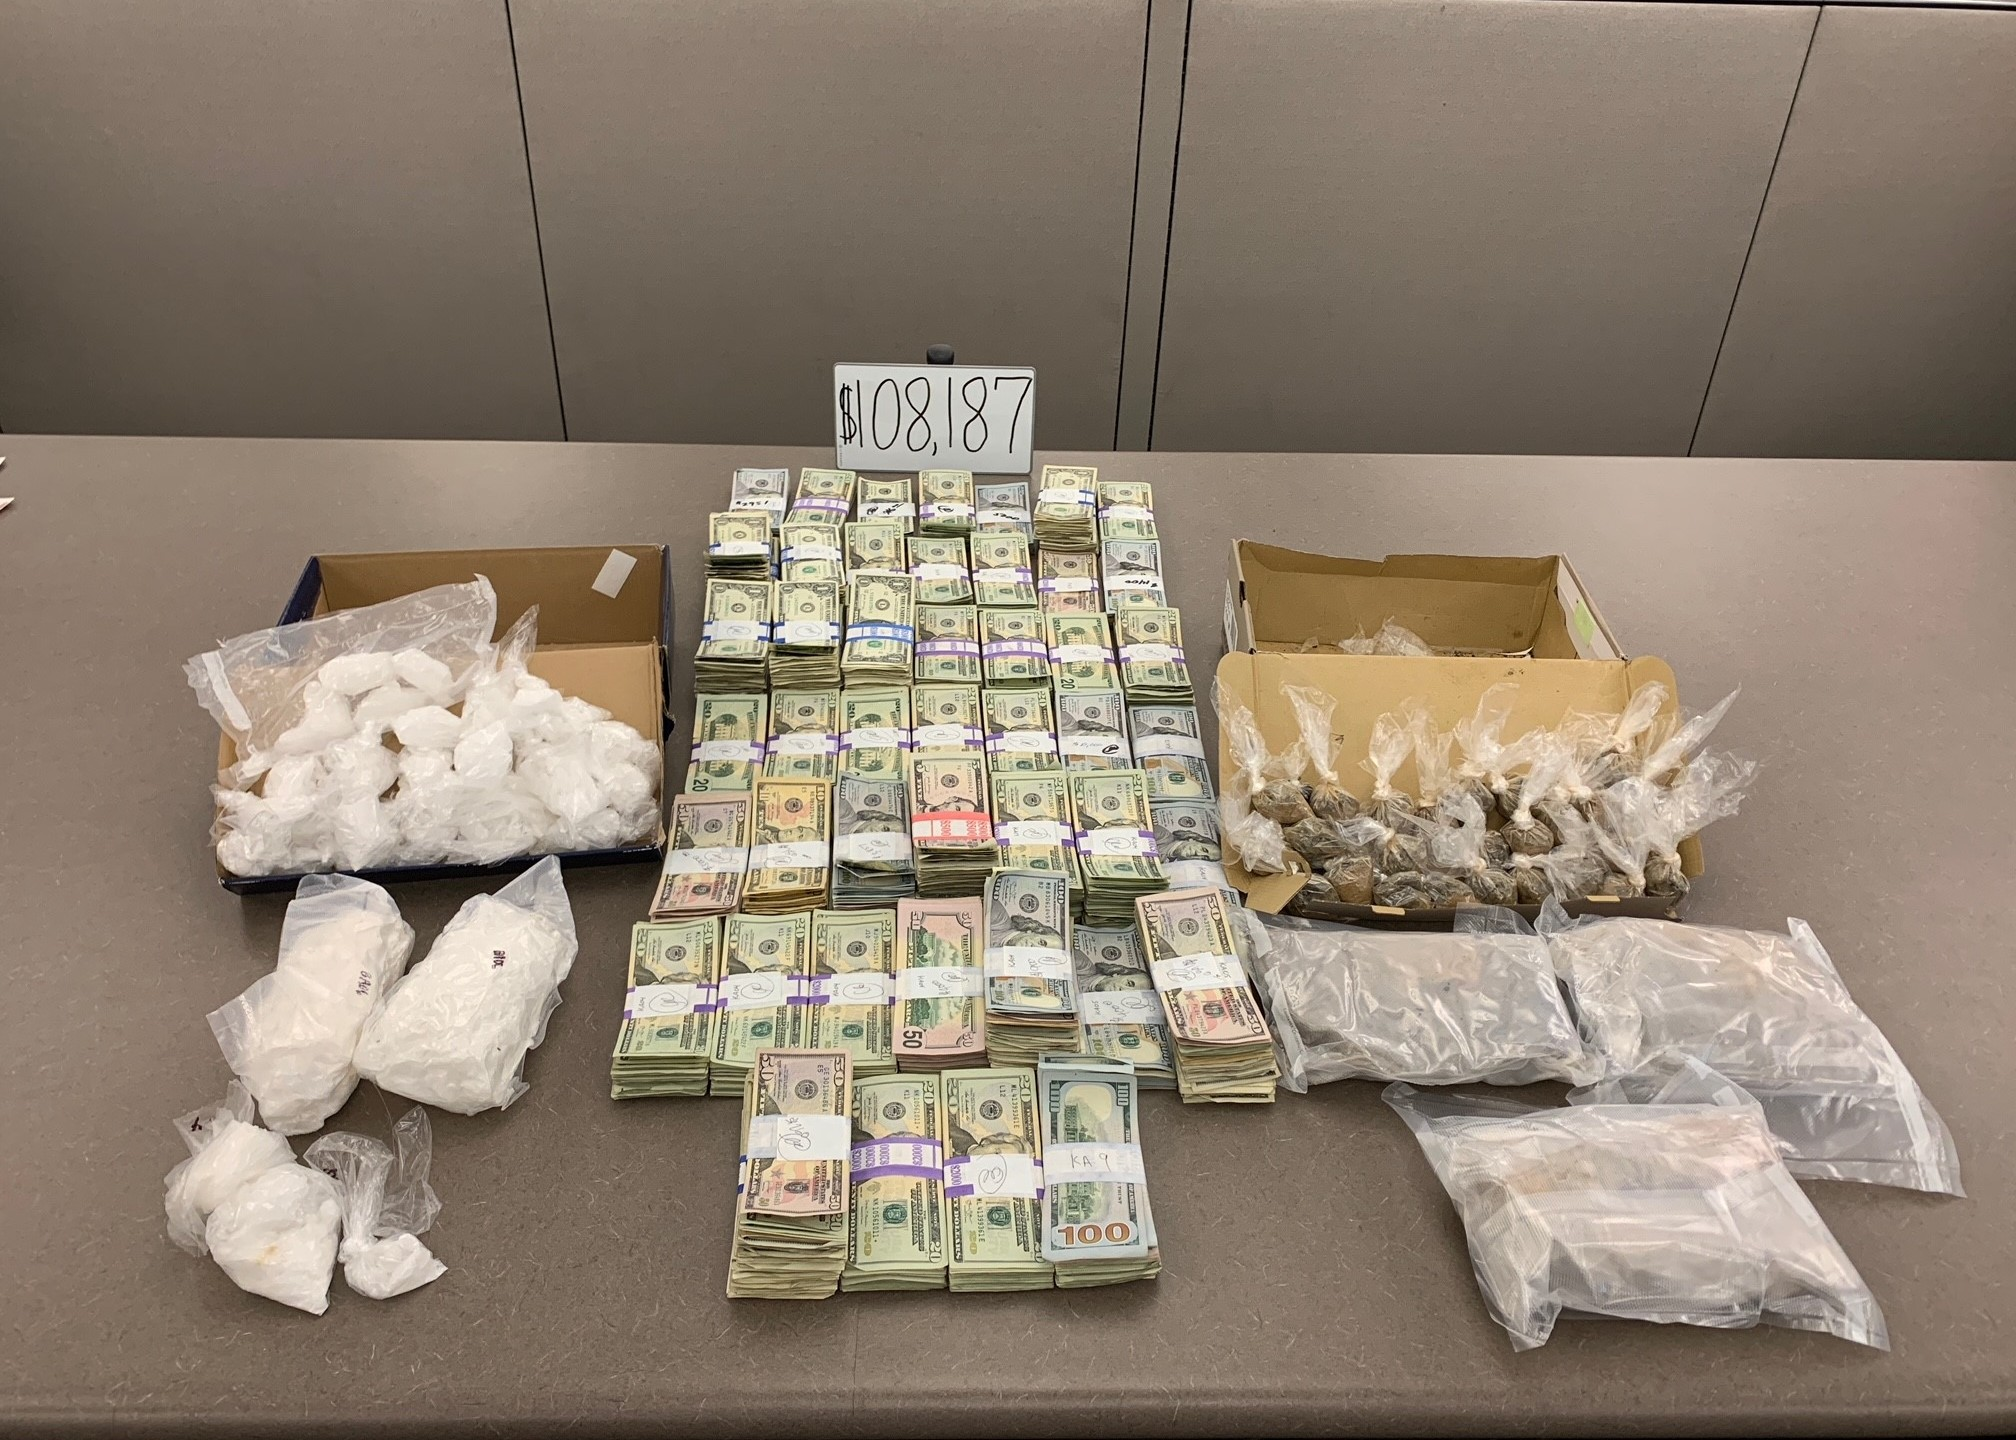 Drug dealers arrested after officers say they found heroin, methamphetamine, and $108K in cash